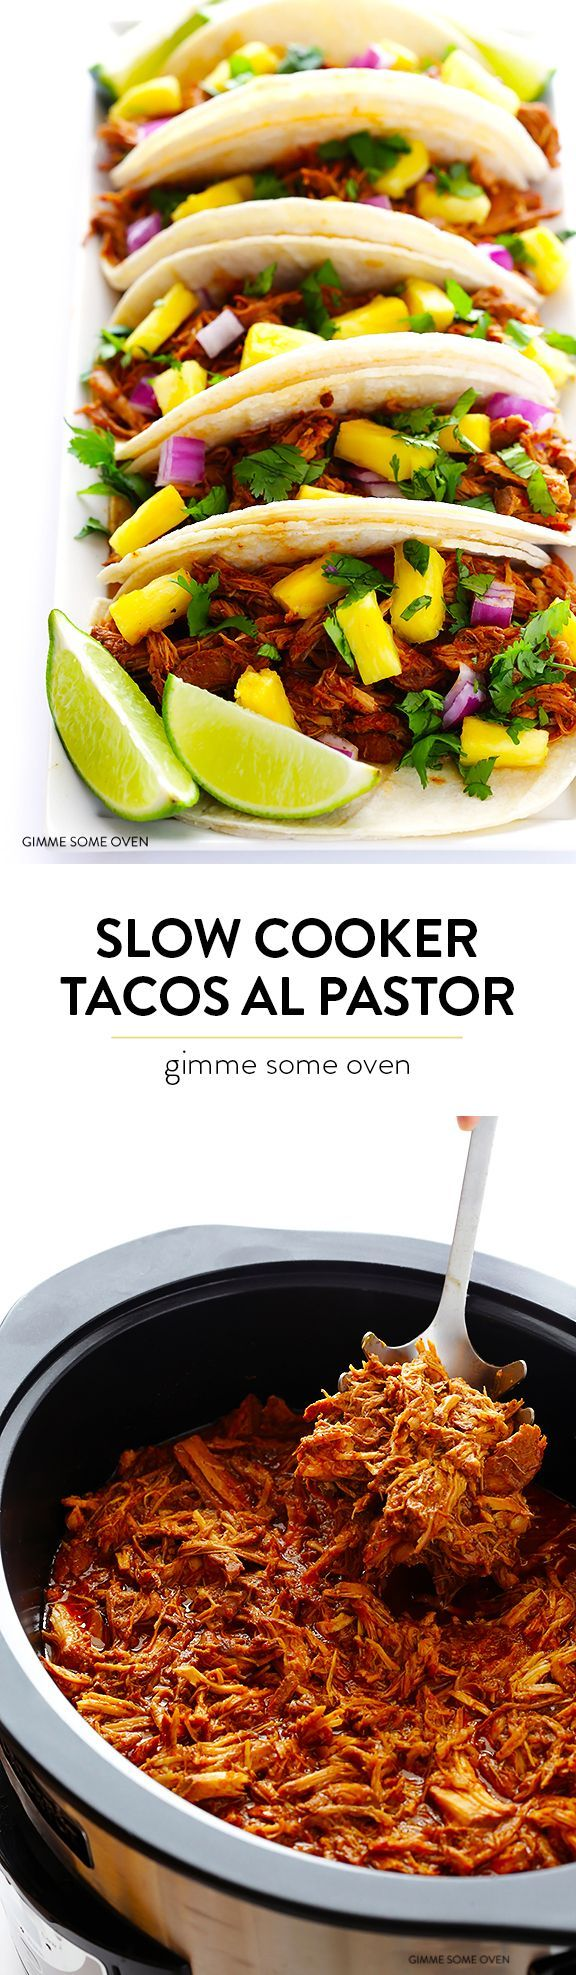 Slow Cooker Tacos Al Pastor -- let your crock pot do all of the work with this traditional pineapple pork tacos recipe! So delicious and always a crowd favorite!